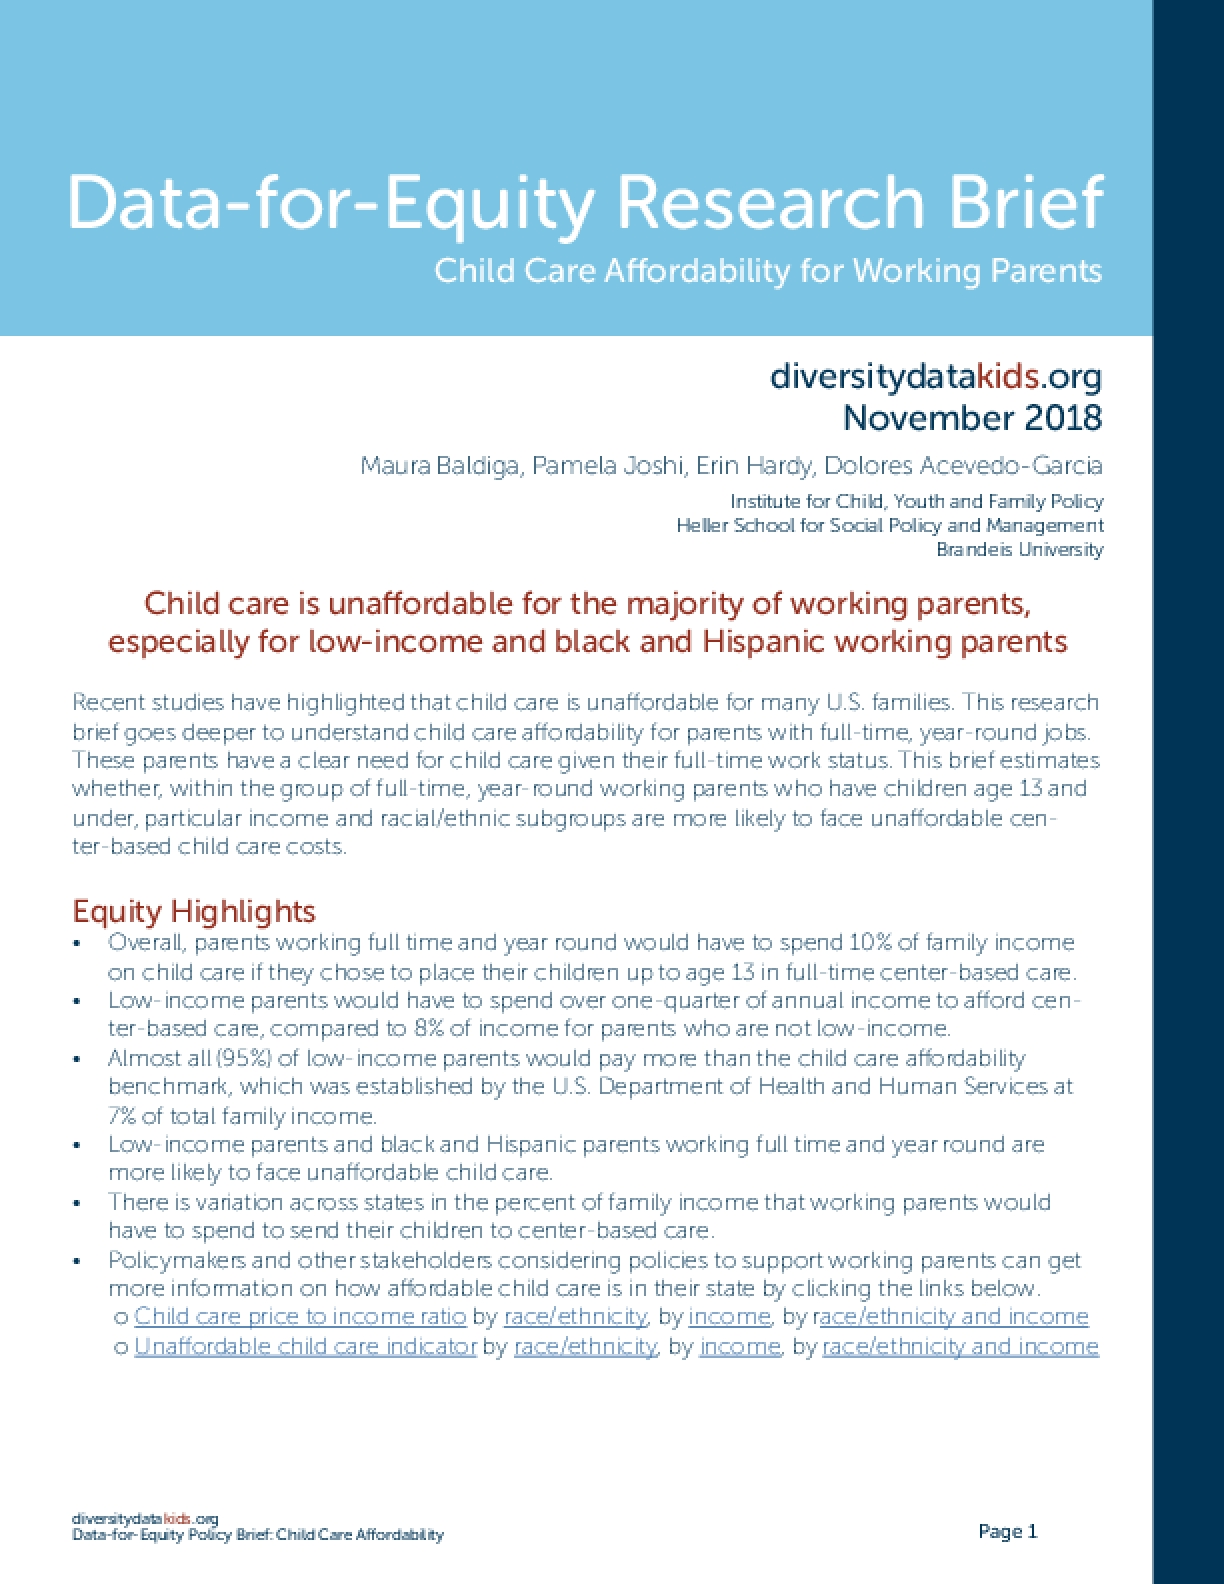 Data-for-Equity Research Brief: Child Care Affordability for Working Parents